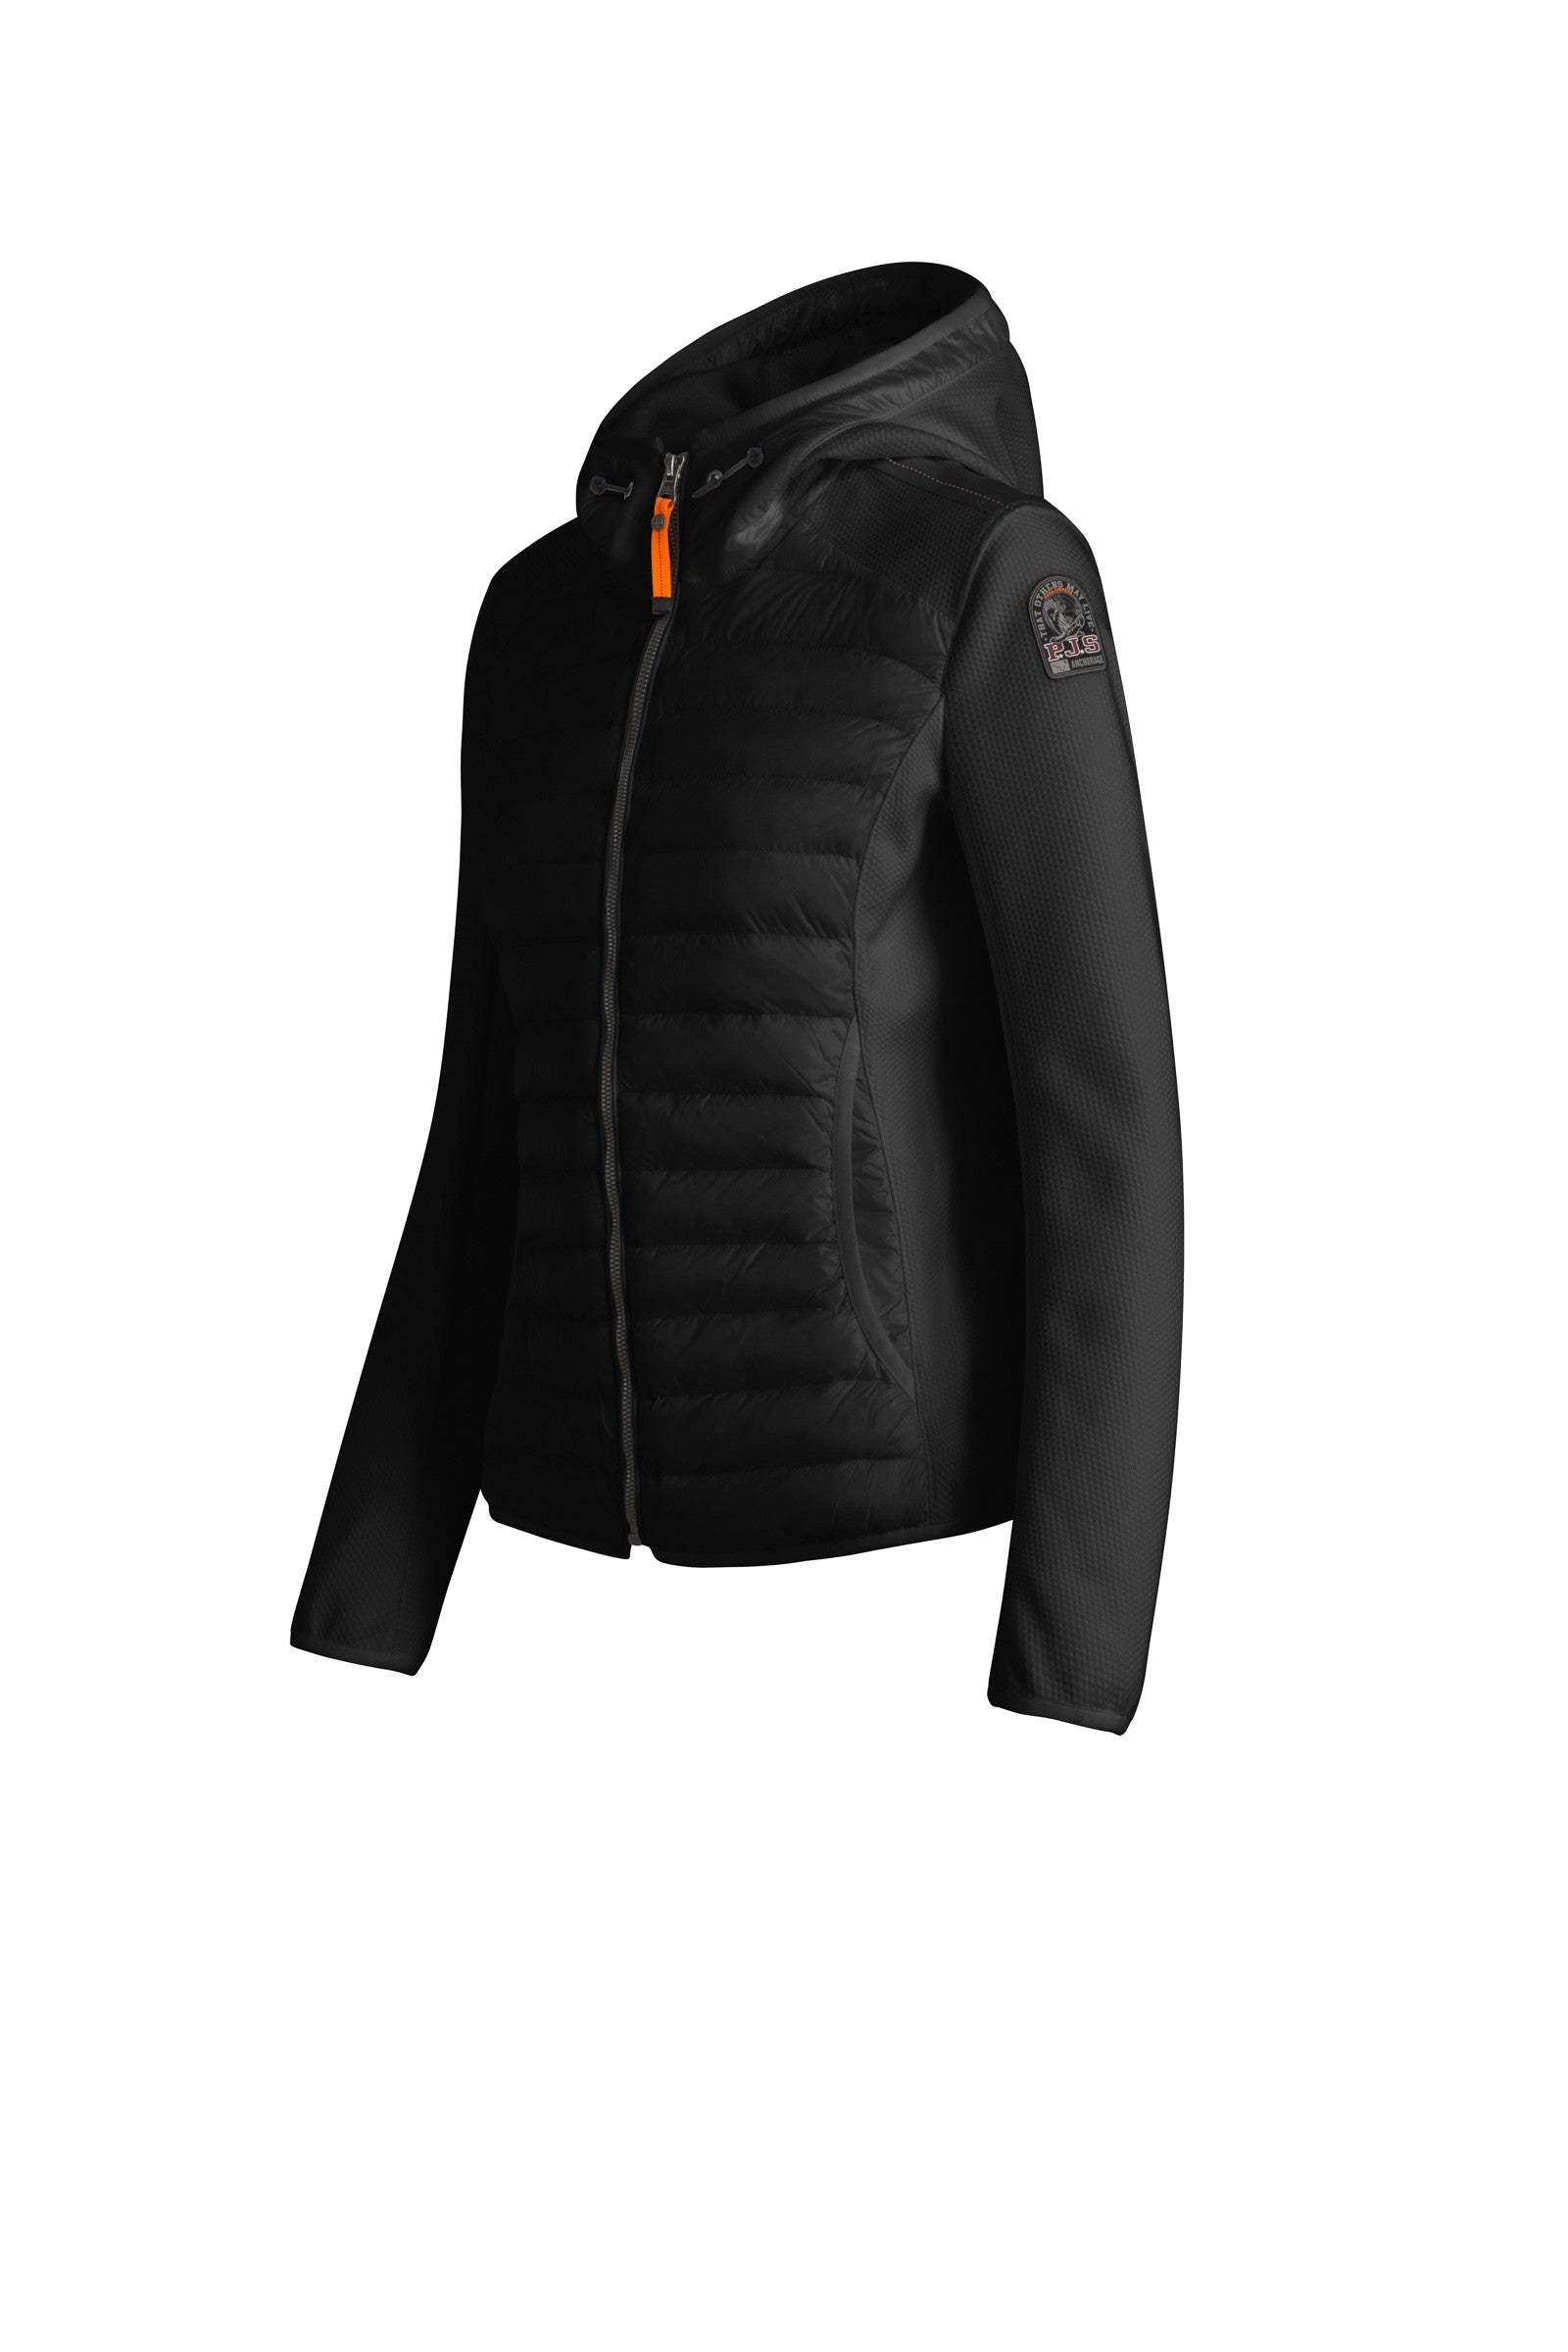 Parajumpers W-Rebecca Women's Jacket. Parajumpers